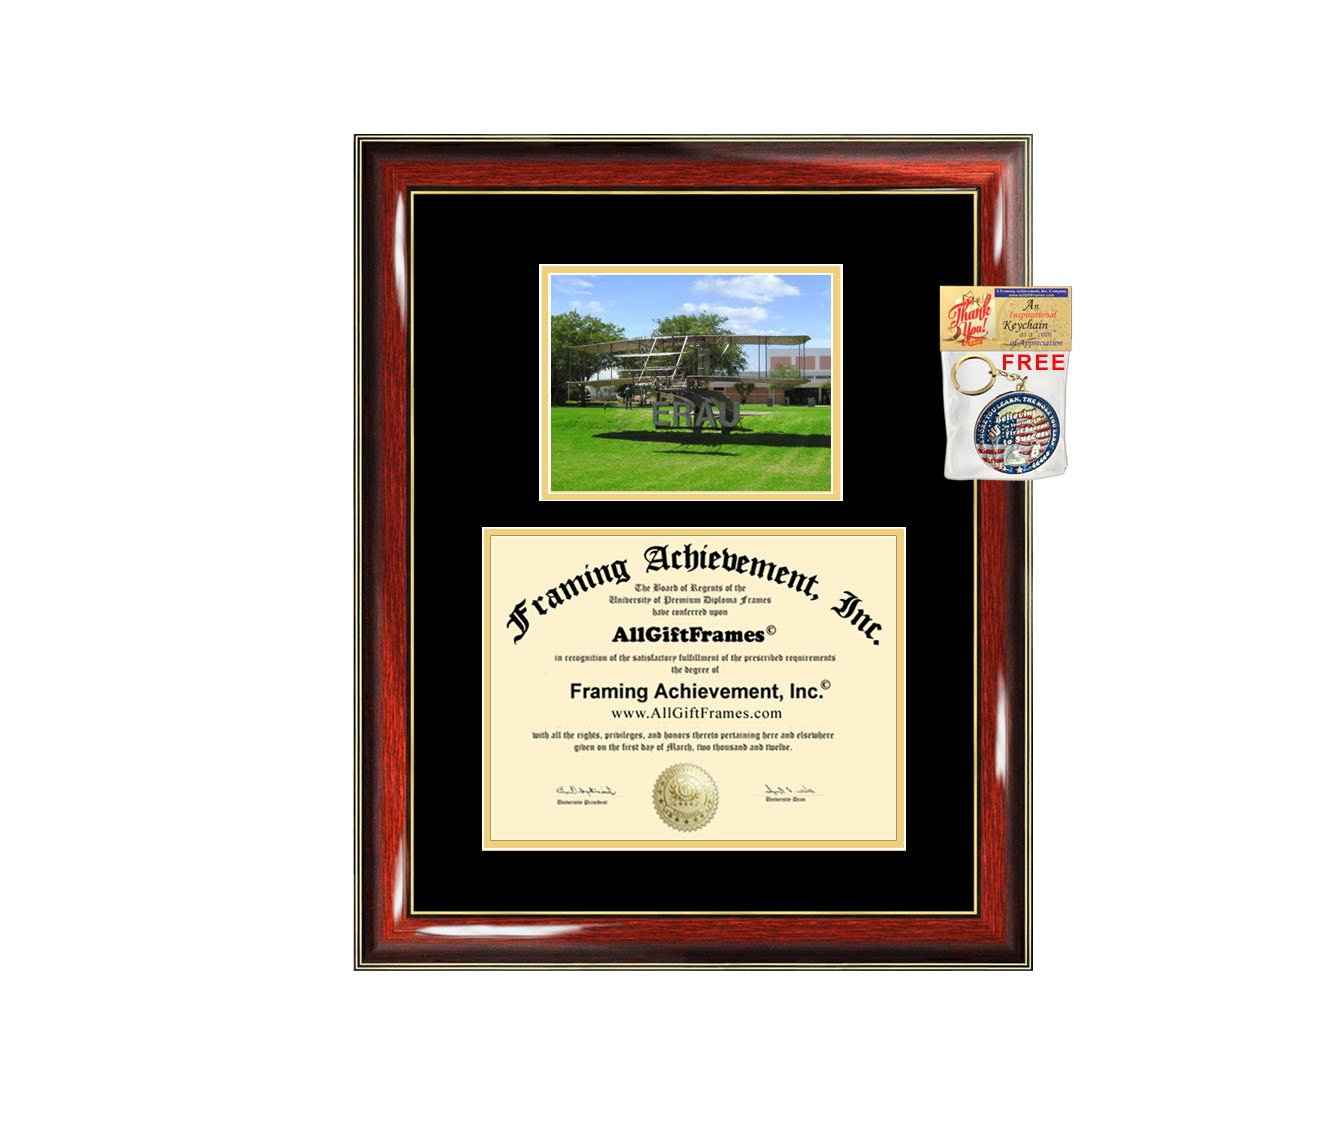 Embry-Riddle Aeronautical University Diploma Frame ERAU Graduation Degree Frame - Matted Campus College Photo Graduation Certificate Plaque University Framing Graduate Gift Collegiate Case Holder by Framing Achievement Inc University Diploma Frame (Image #1)